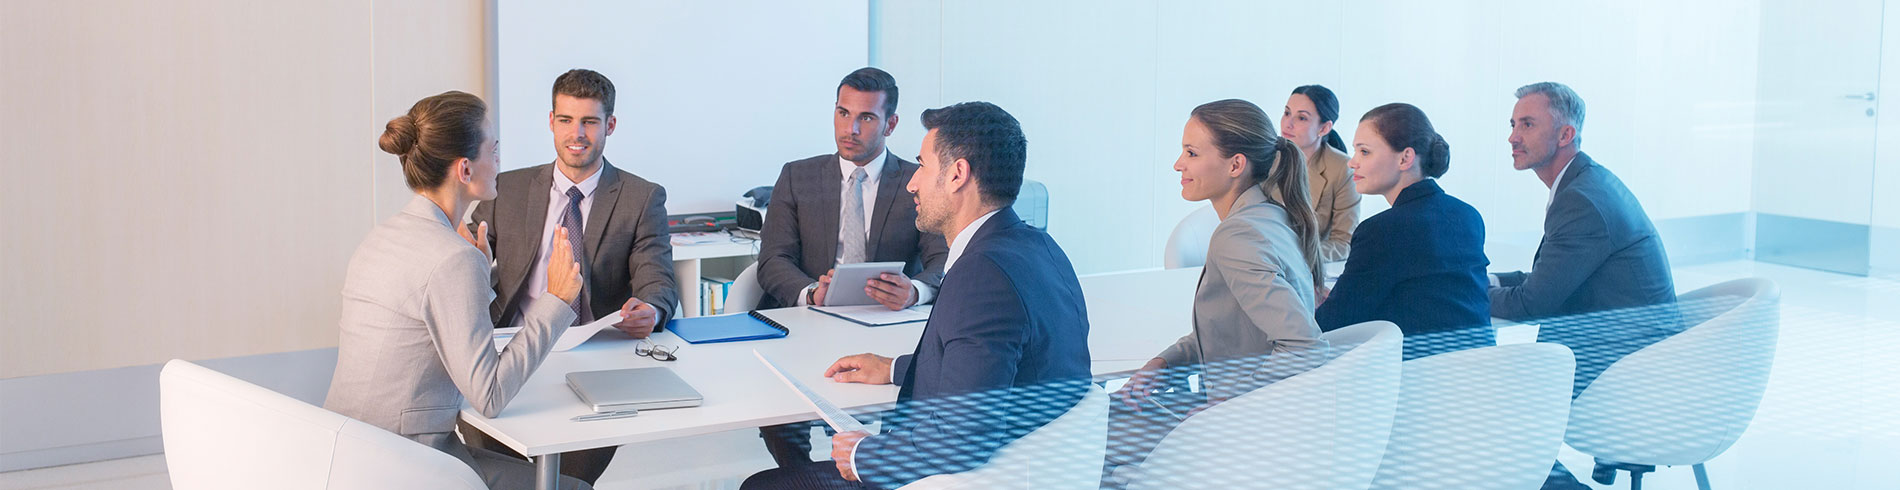 Corporate meeting image